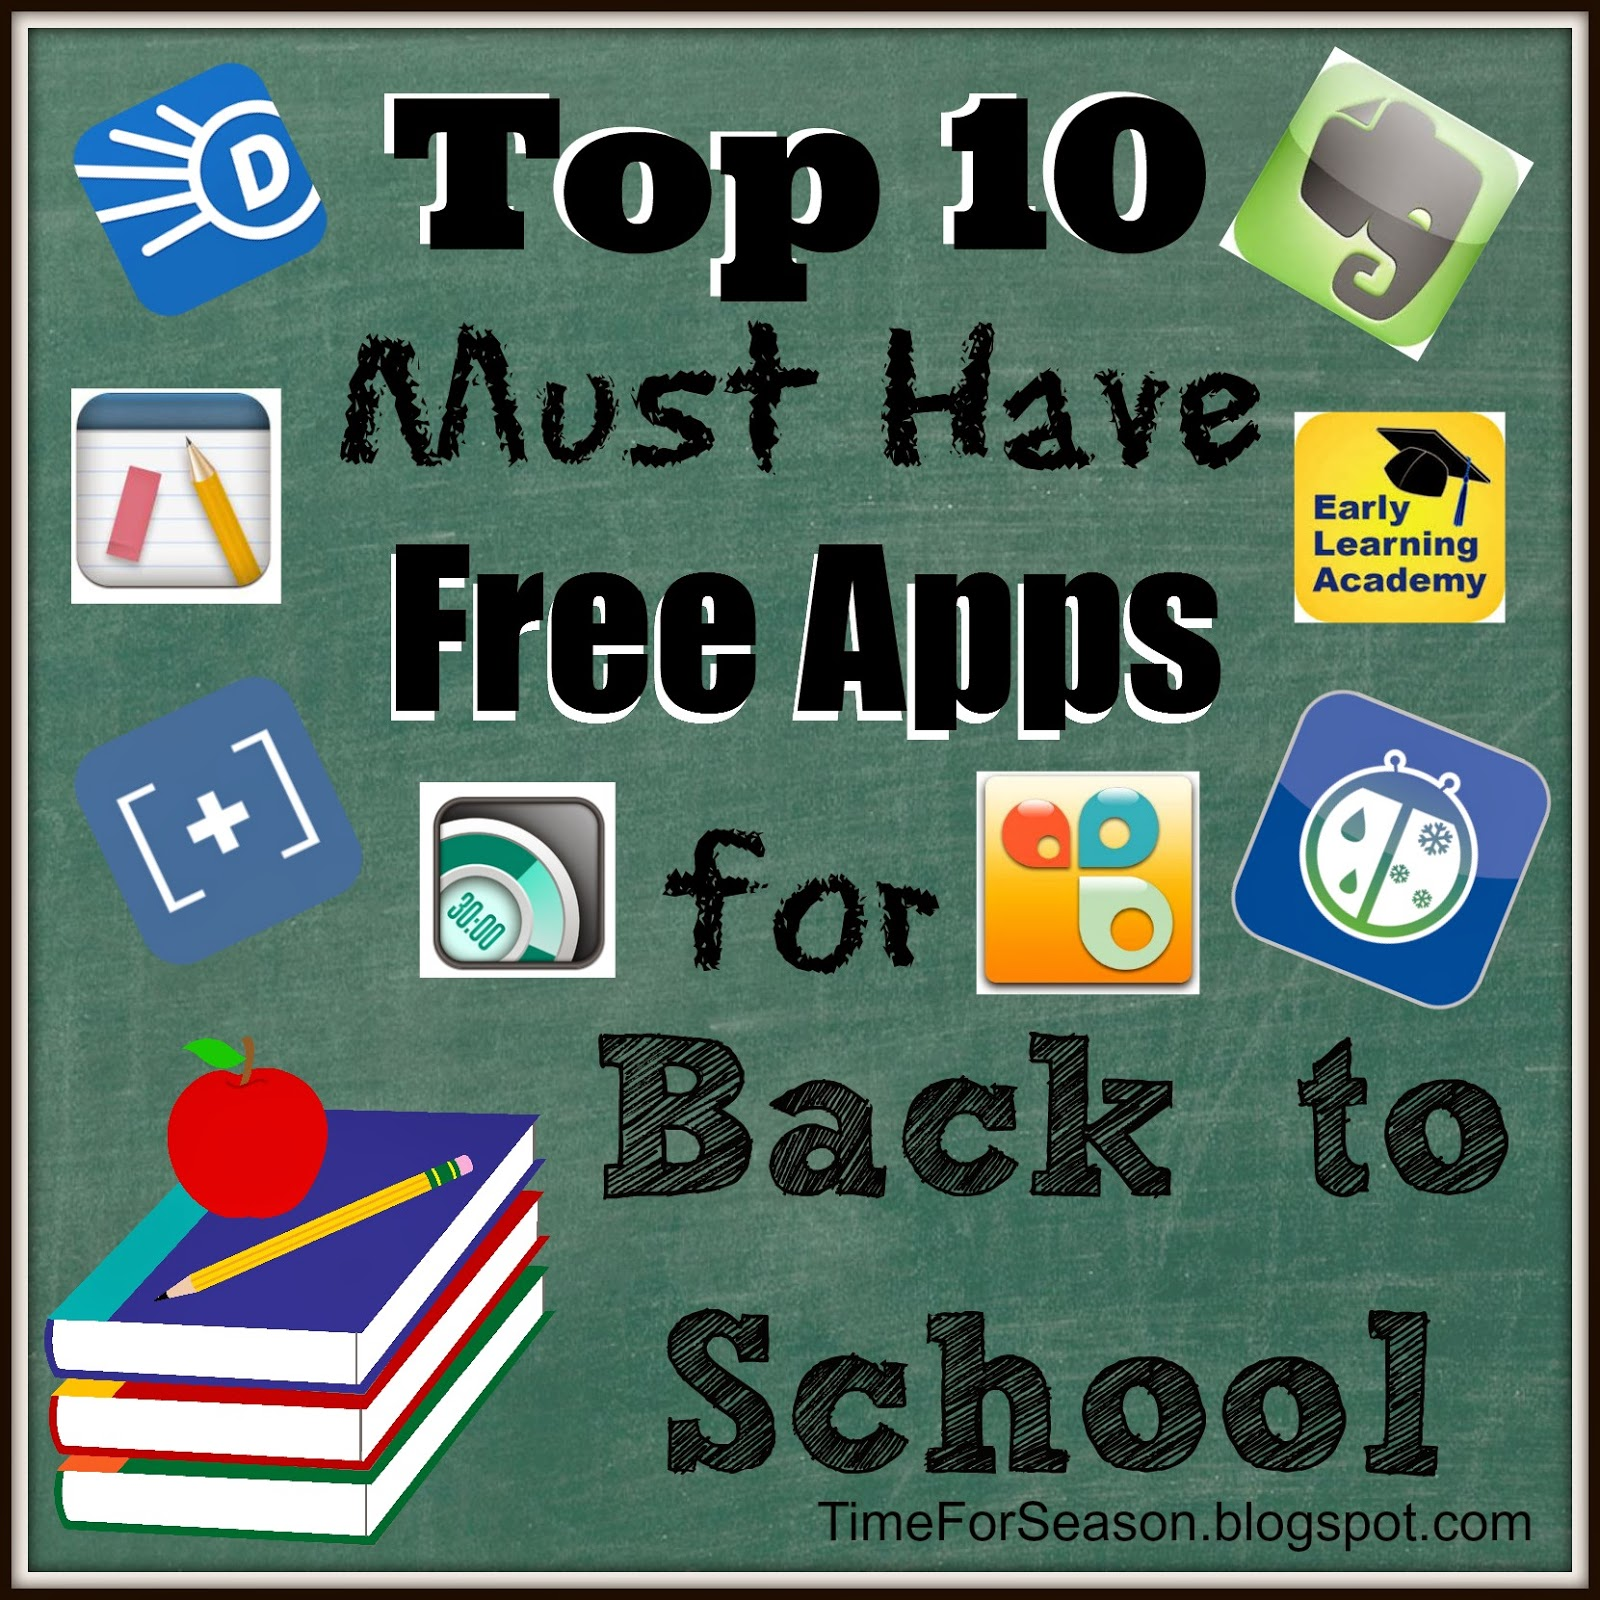 http://timeforseason.blogspot.com/2014/08/free-apps-for-back-to-school-top-10.html